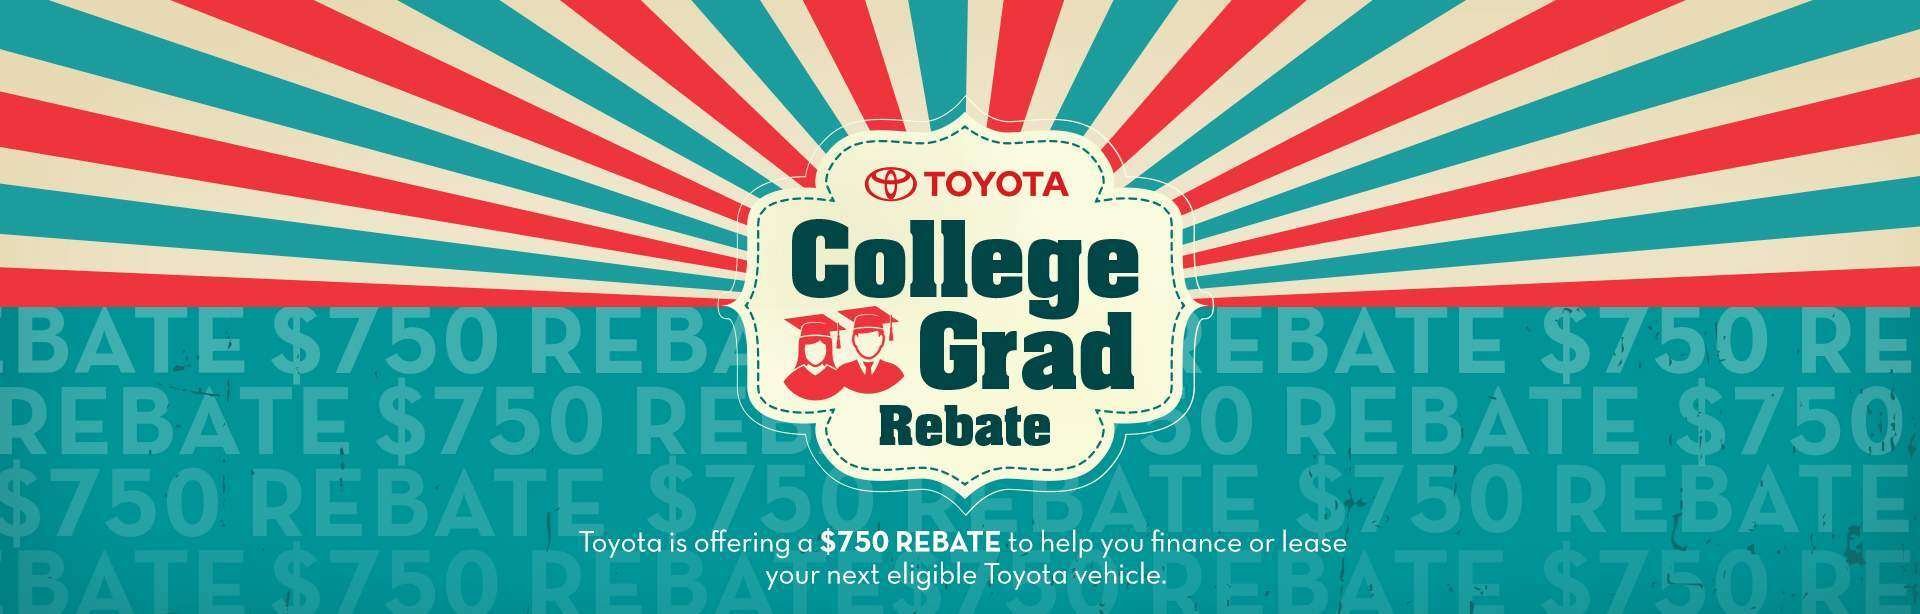 Car Dealerships In Columbia Tn >> Toyota Dealership Columbia and near Spring Hill TN Used Cars Roberts Toyota